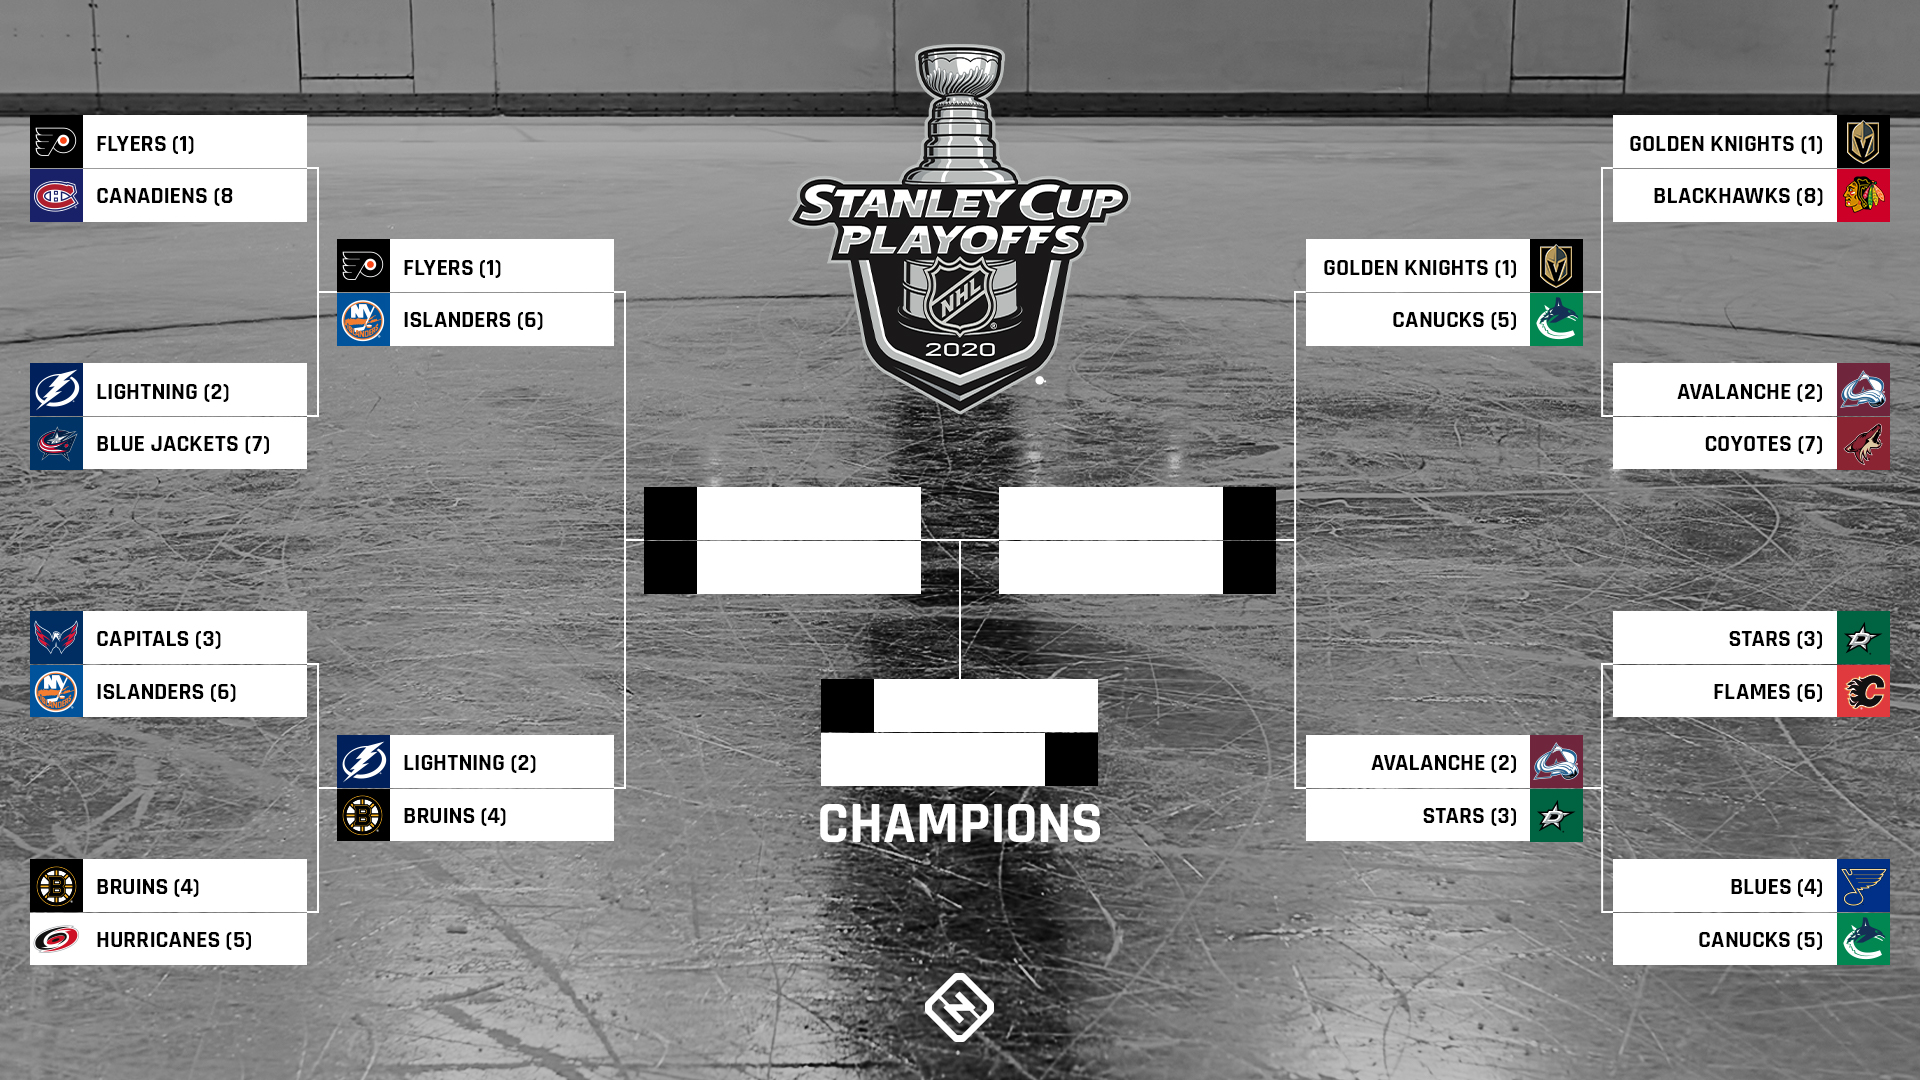 NHL playoff schedule 2020: Updated bracket, dates, times, TV channels for every Round 2 series 1